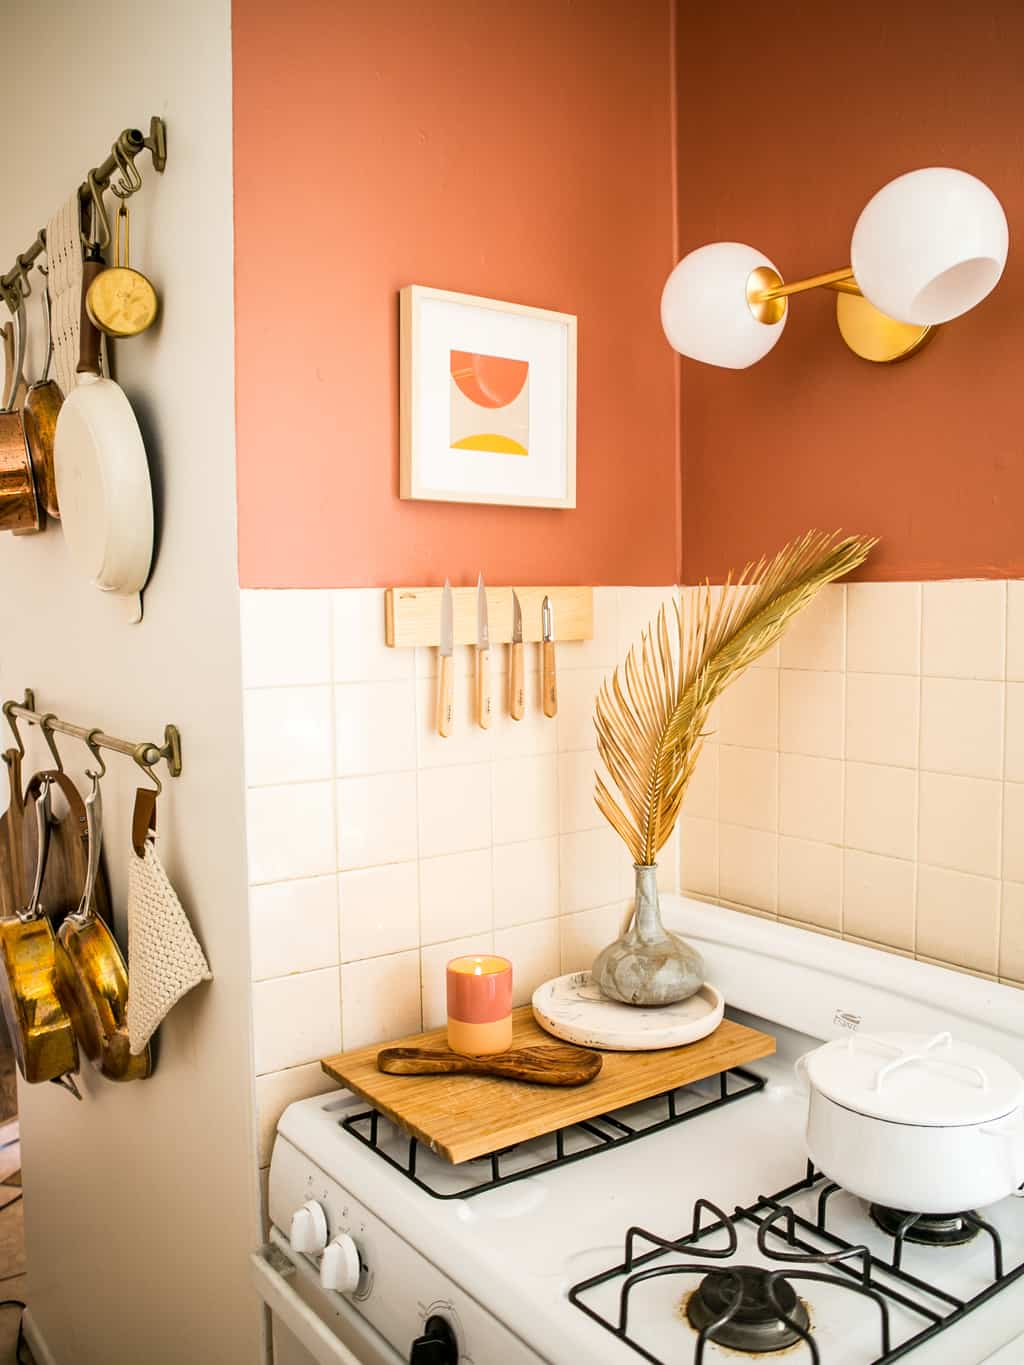 White stove and knife magnet with pan racks.